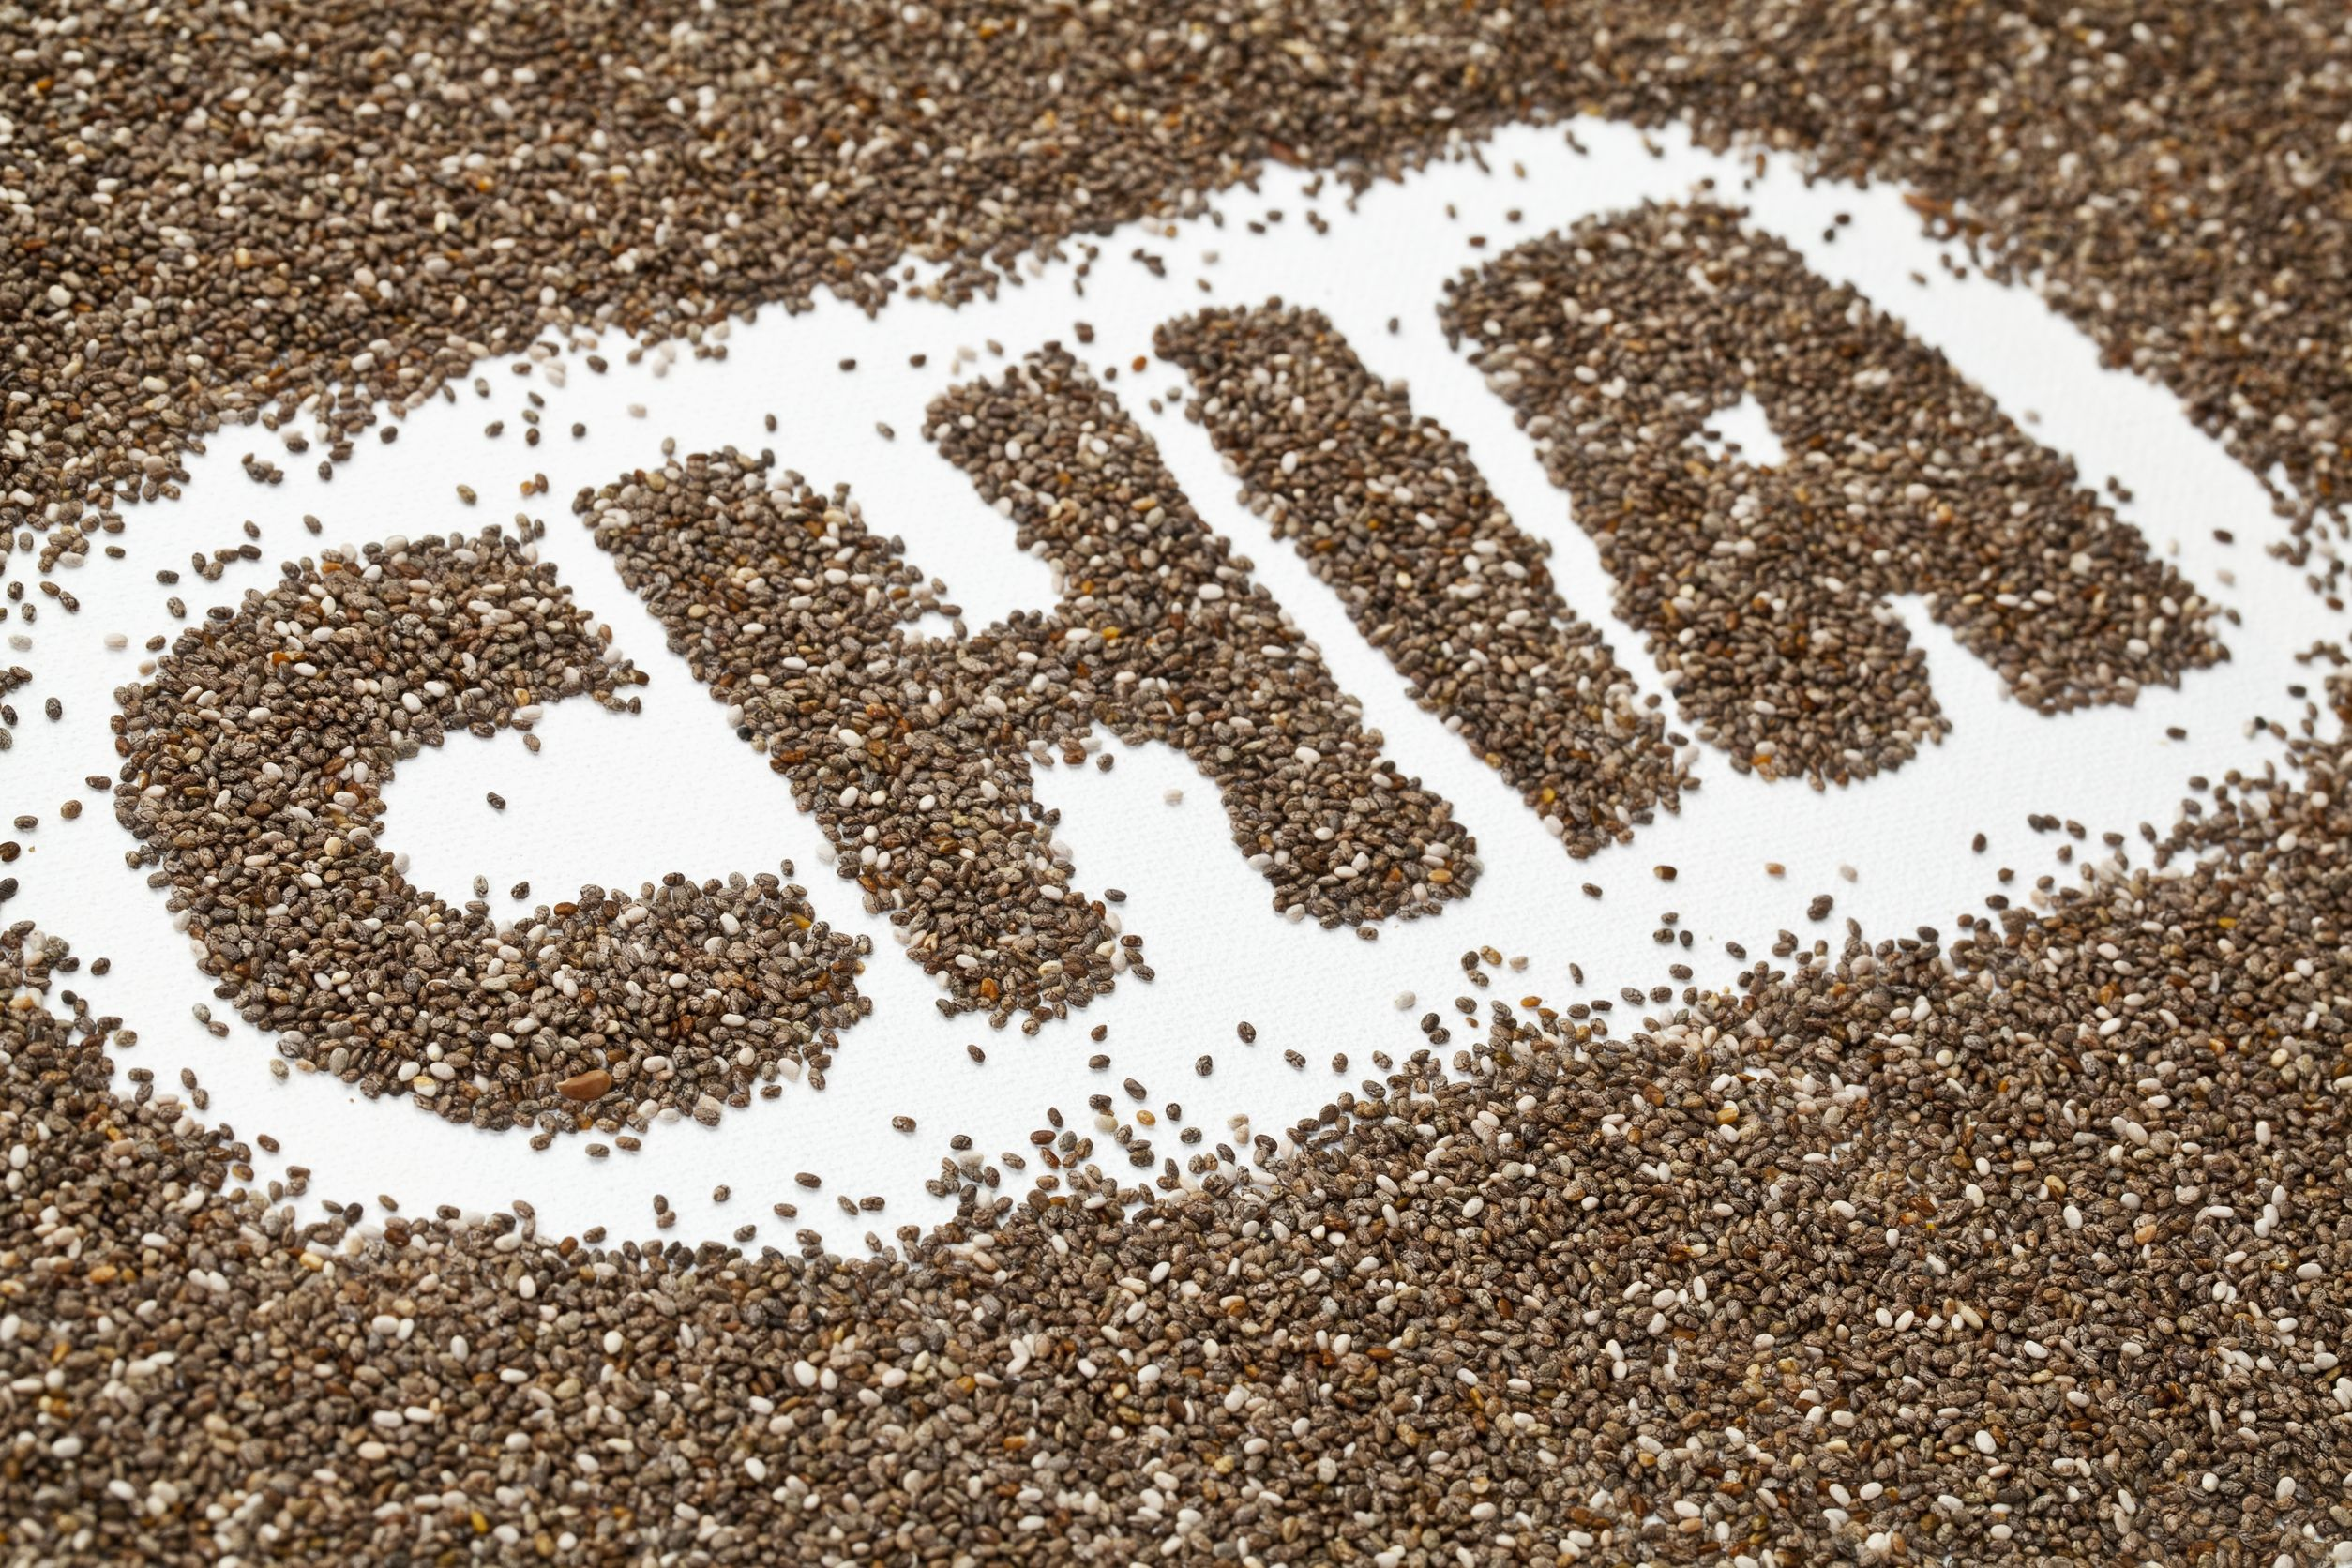 Chia Seeds – A Super Food That Does it All